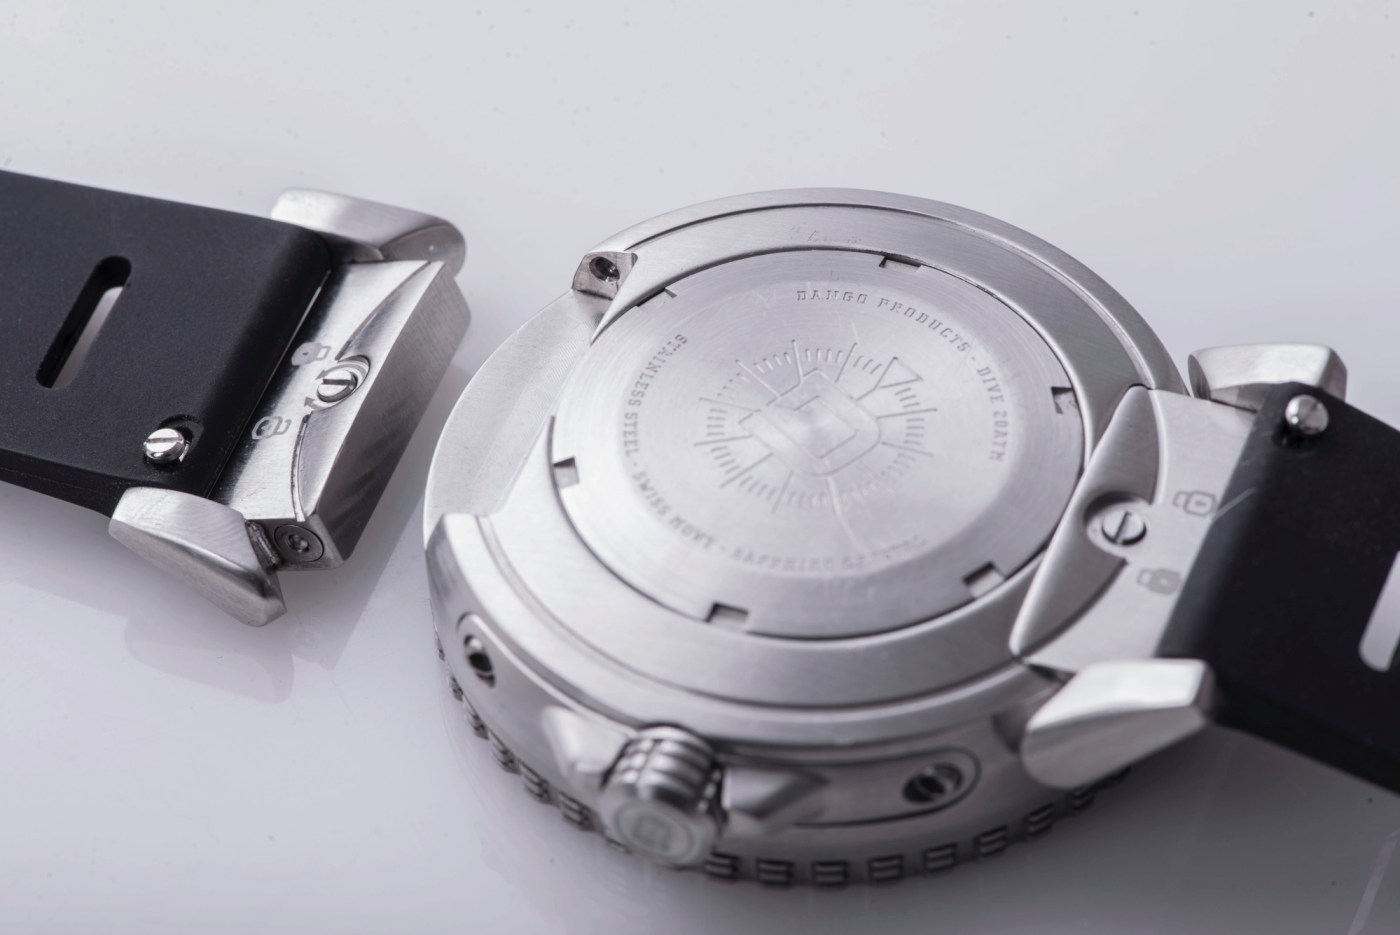 Caseback with modular lugs that can be easily changed